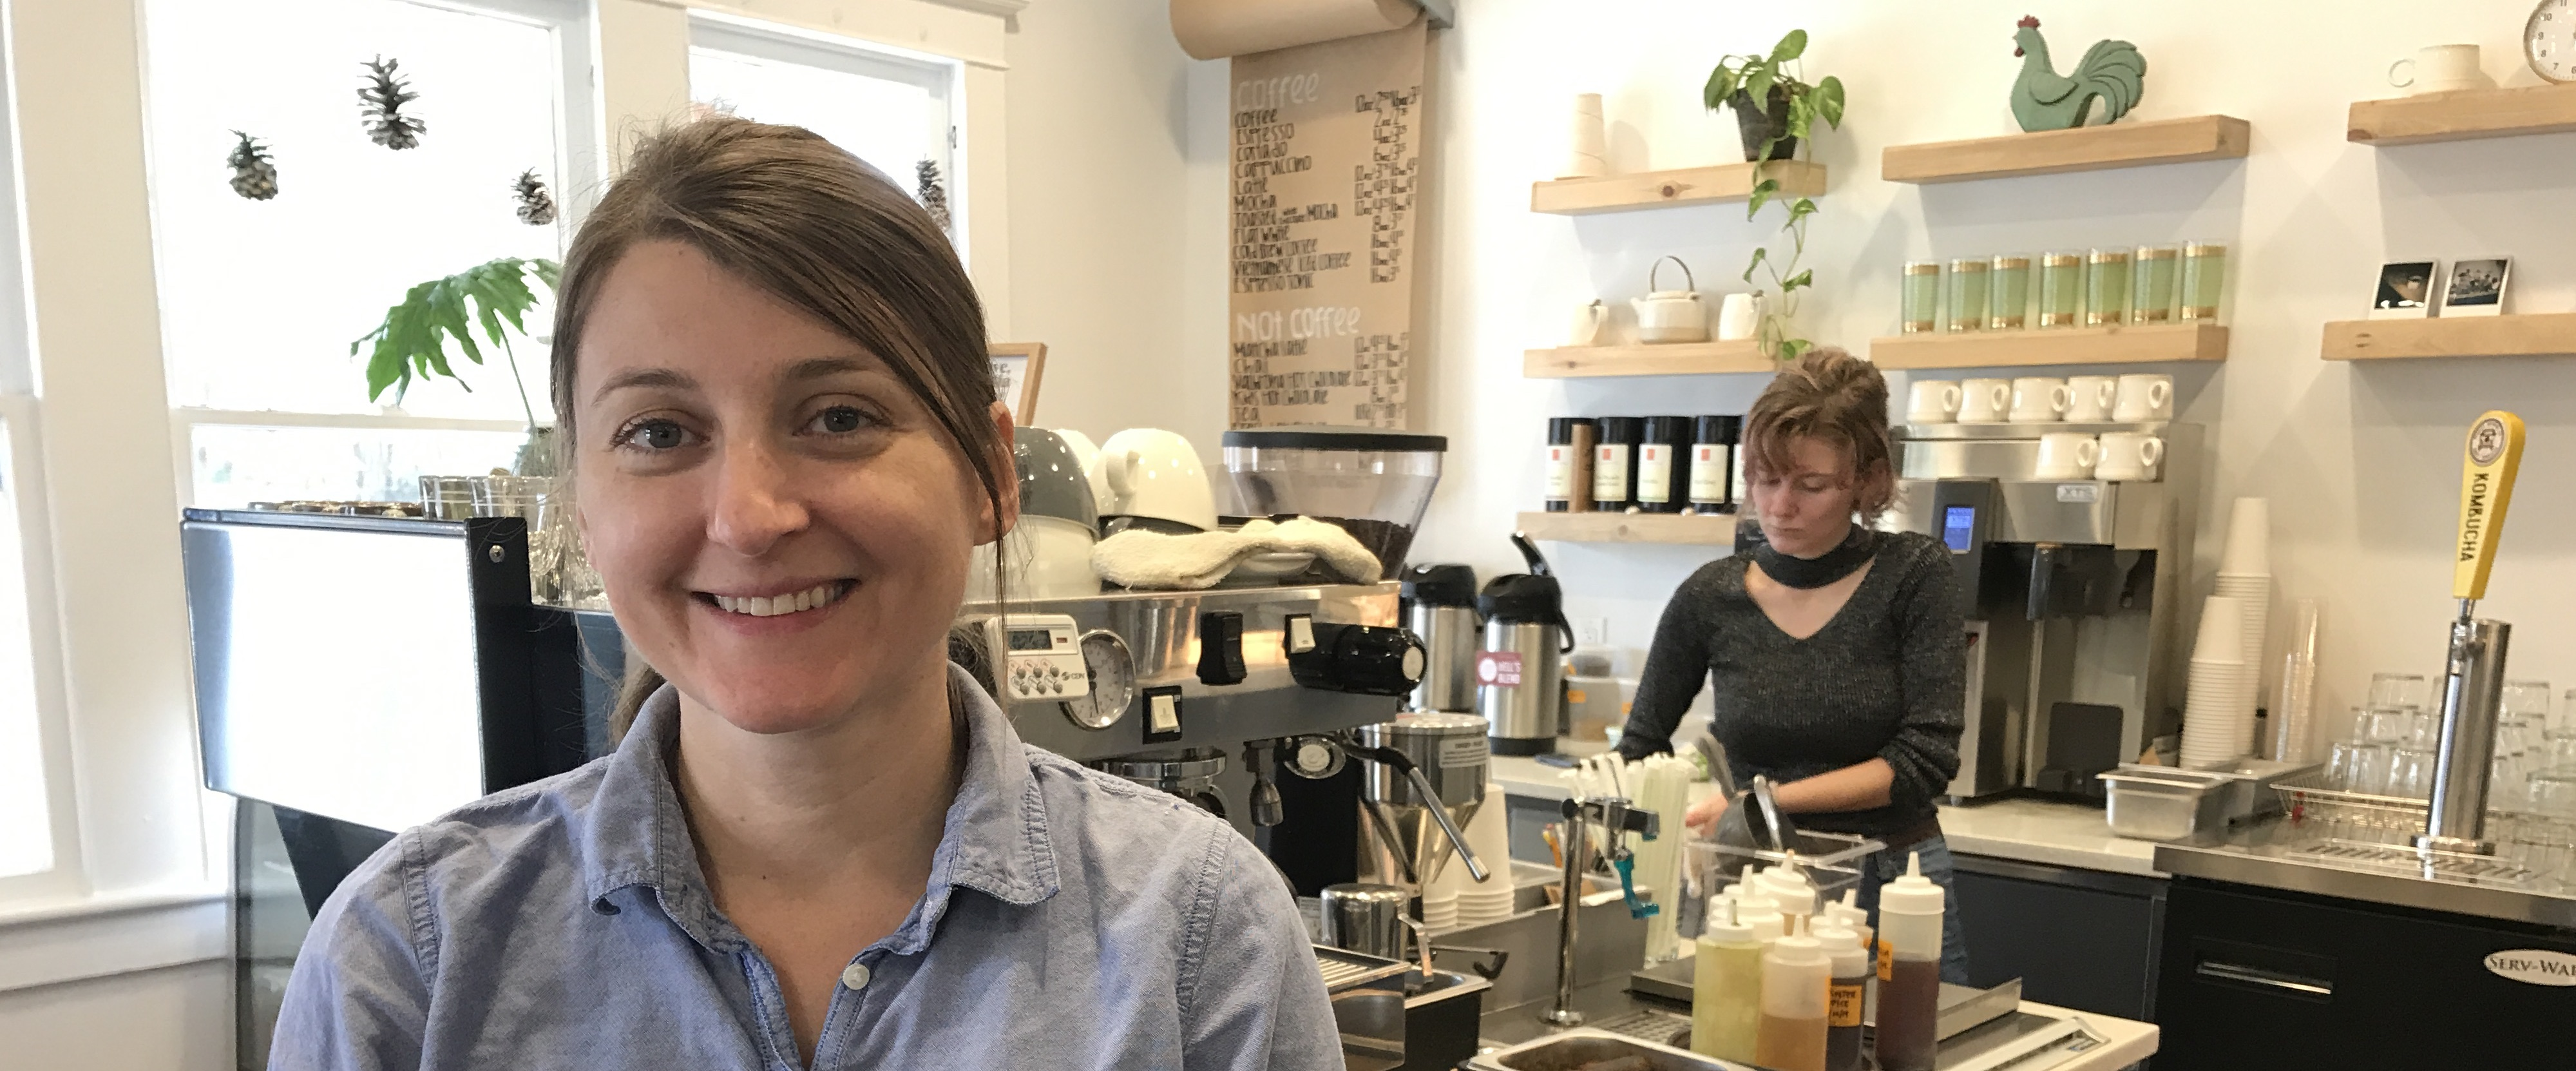 Lydia Clopton, Owner | Love, Lydia Bakery & Cafe